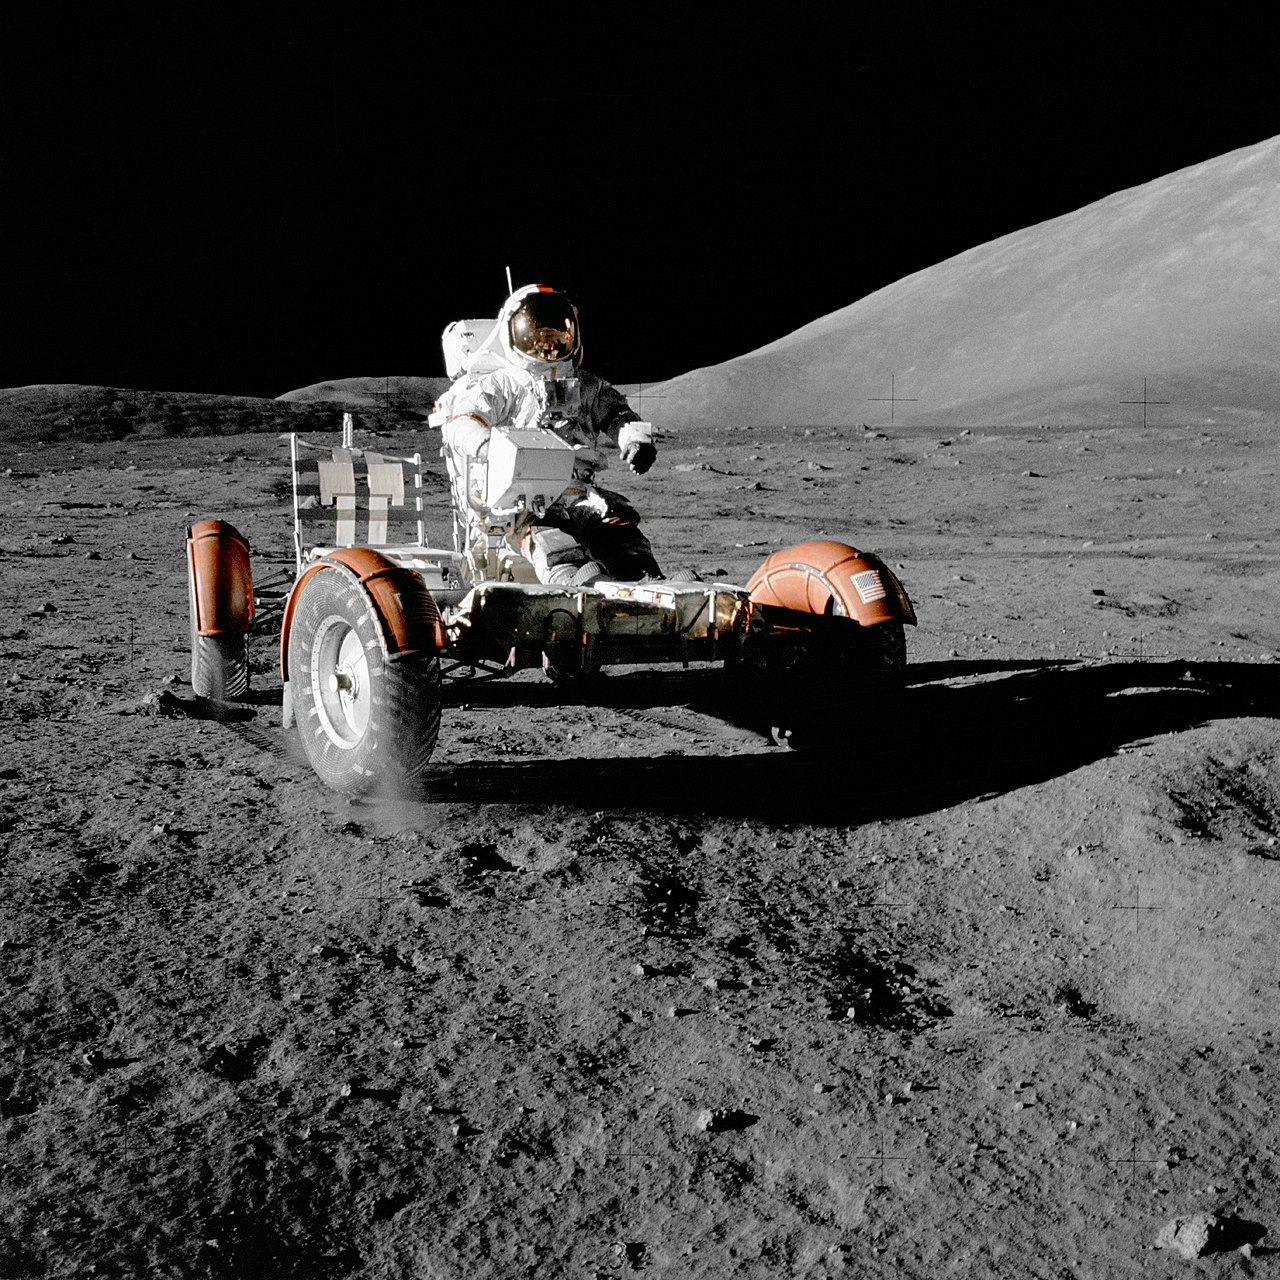 Apollo 17 mission, 11 December 1972. Astronaut Eugene A. Cernan, commander, makes a short checkout of the Lunar Roving Vehicle (LRV) during the early part of the first Apollo 17 Extravehicular Activity (EVA-1) at the Taurus-Littrow landing site.